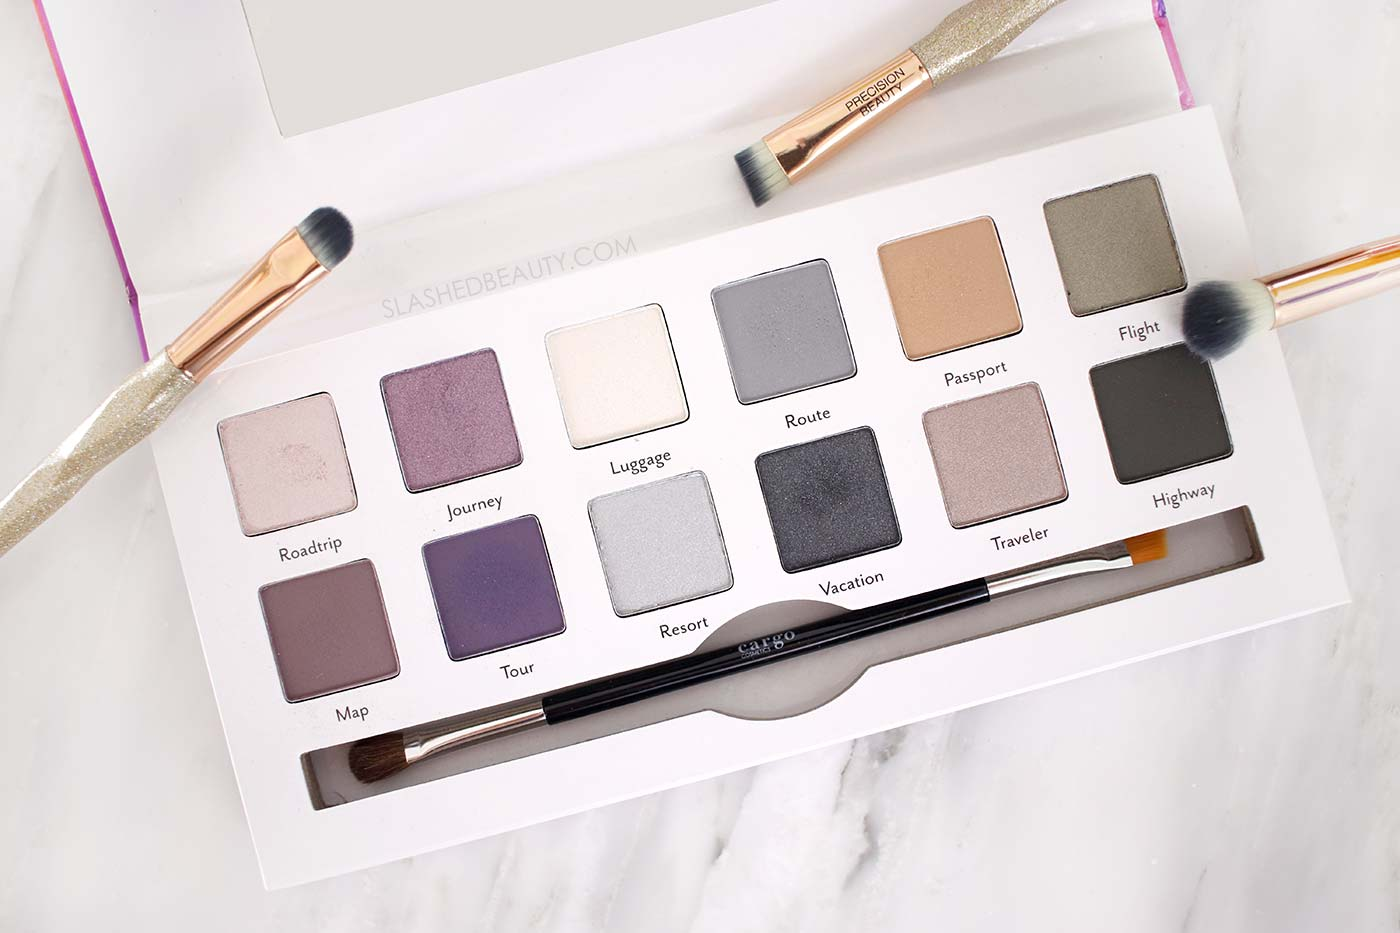 Cargo Getaway Eye Shadow Palette | 2021 Essentials Giveaway: Masks, Makeup & Amazon Gift Card! | Slashed Beauty